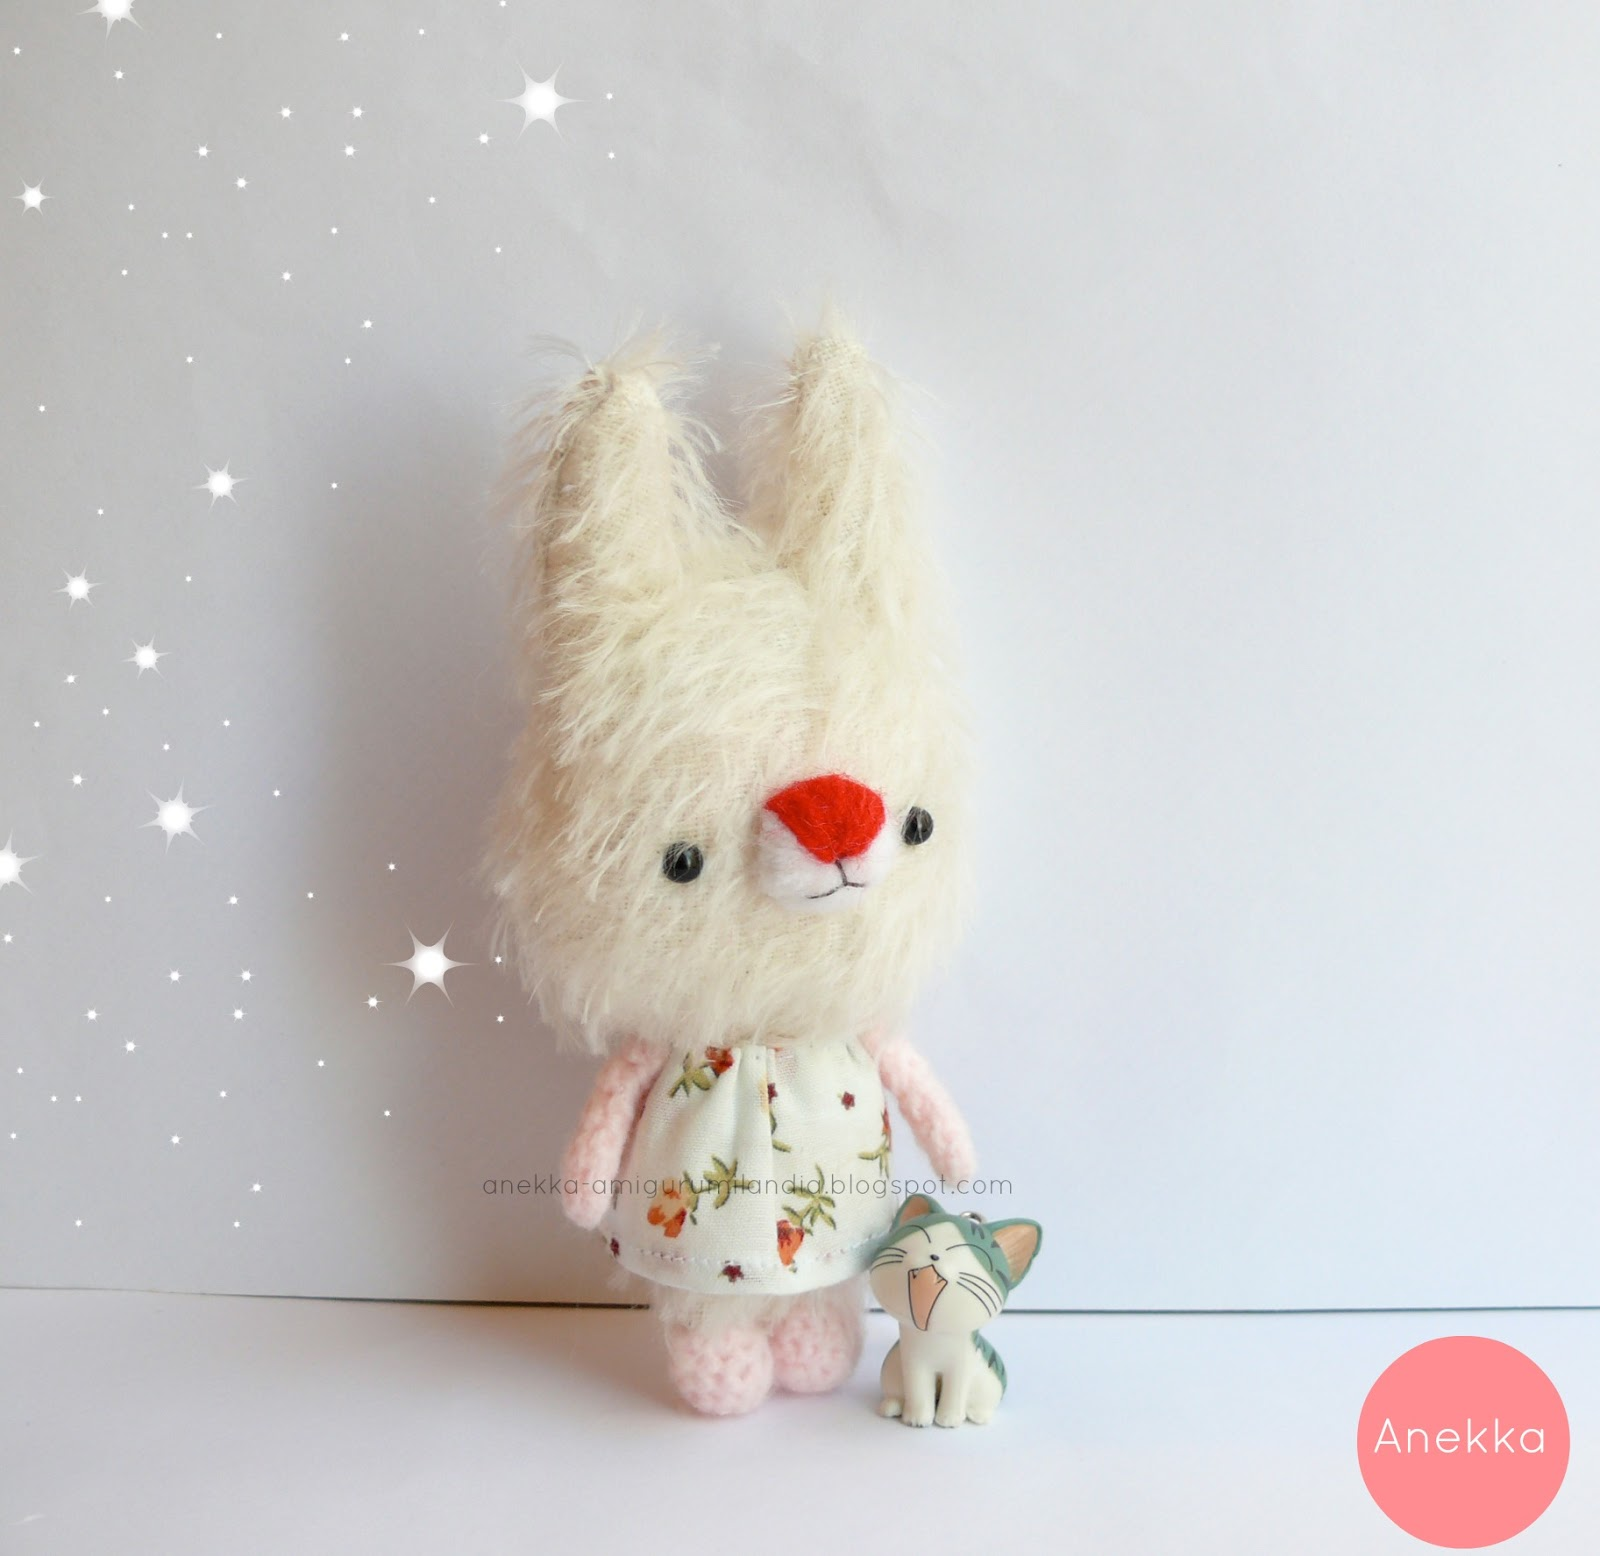 plush doll mohair amigurumi miniature